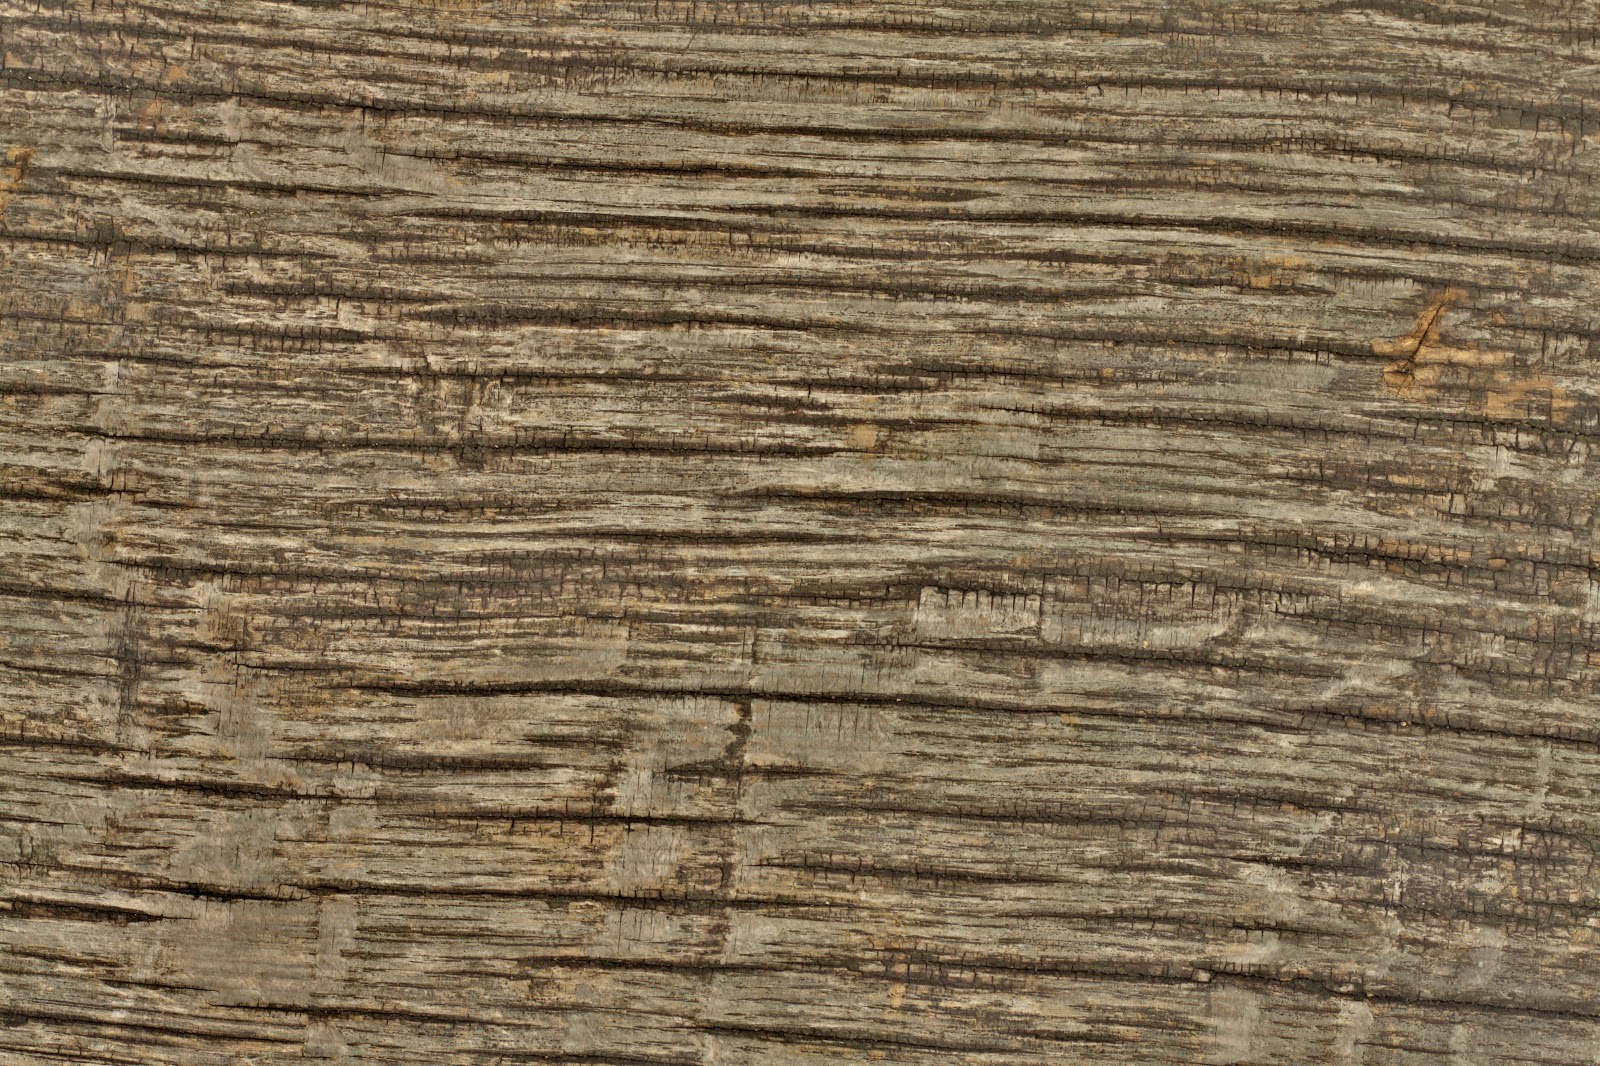 Wood dry cracked bench plank tree bark texture ver 15